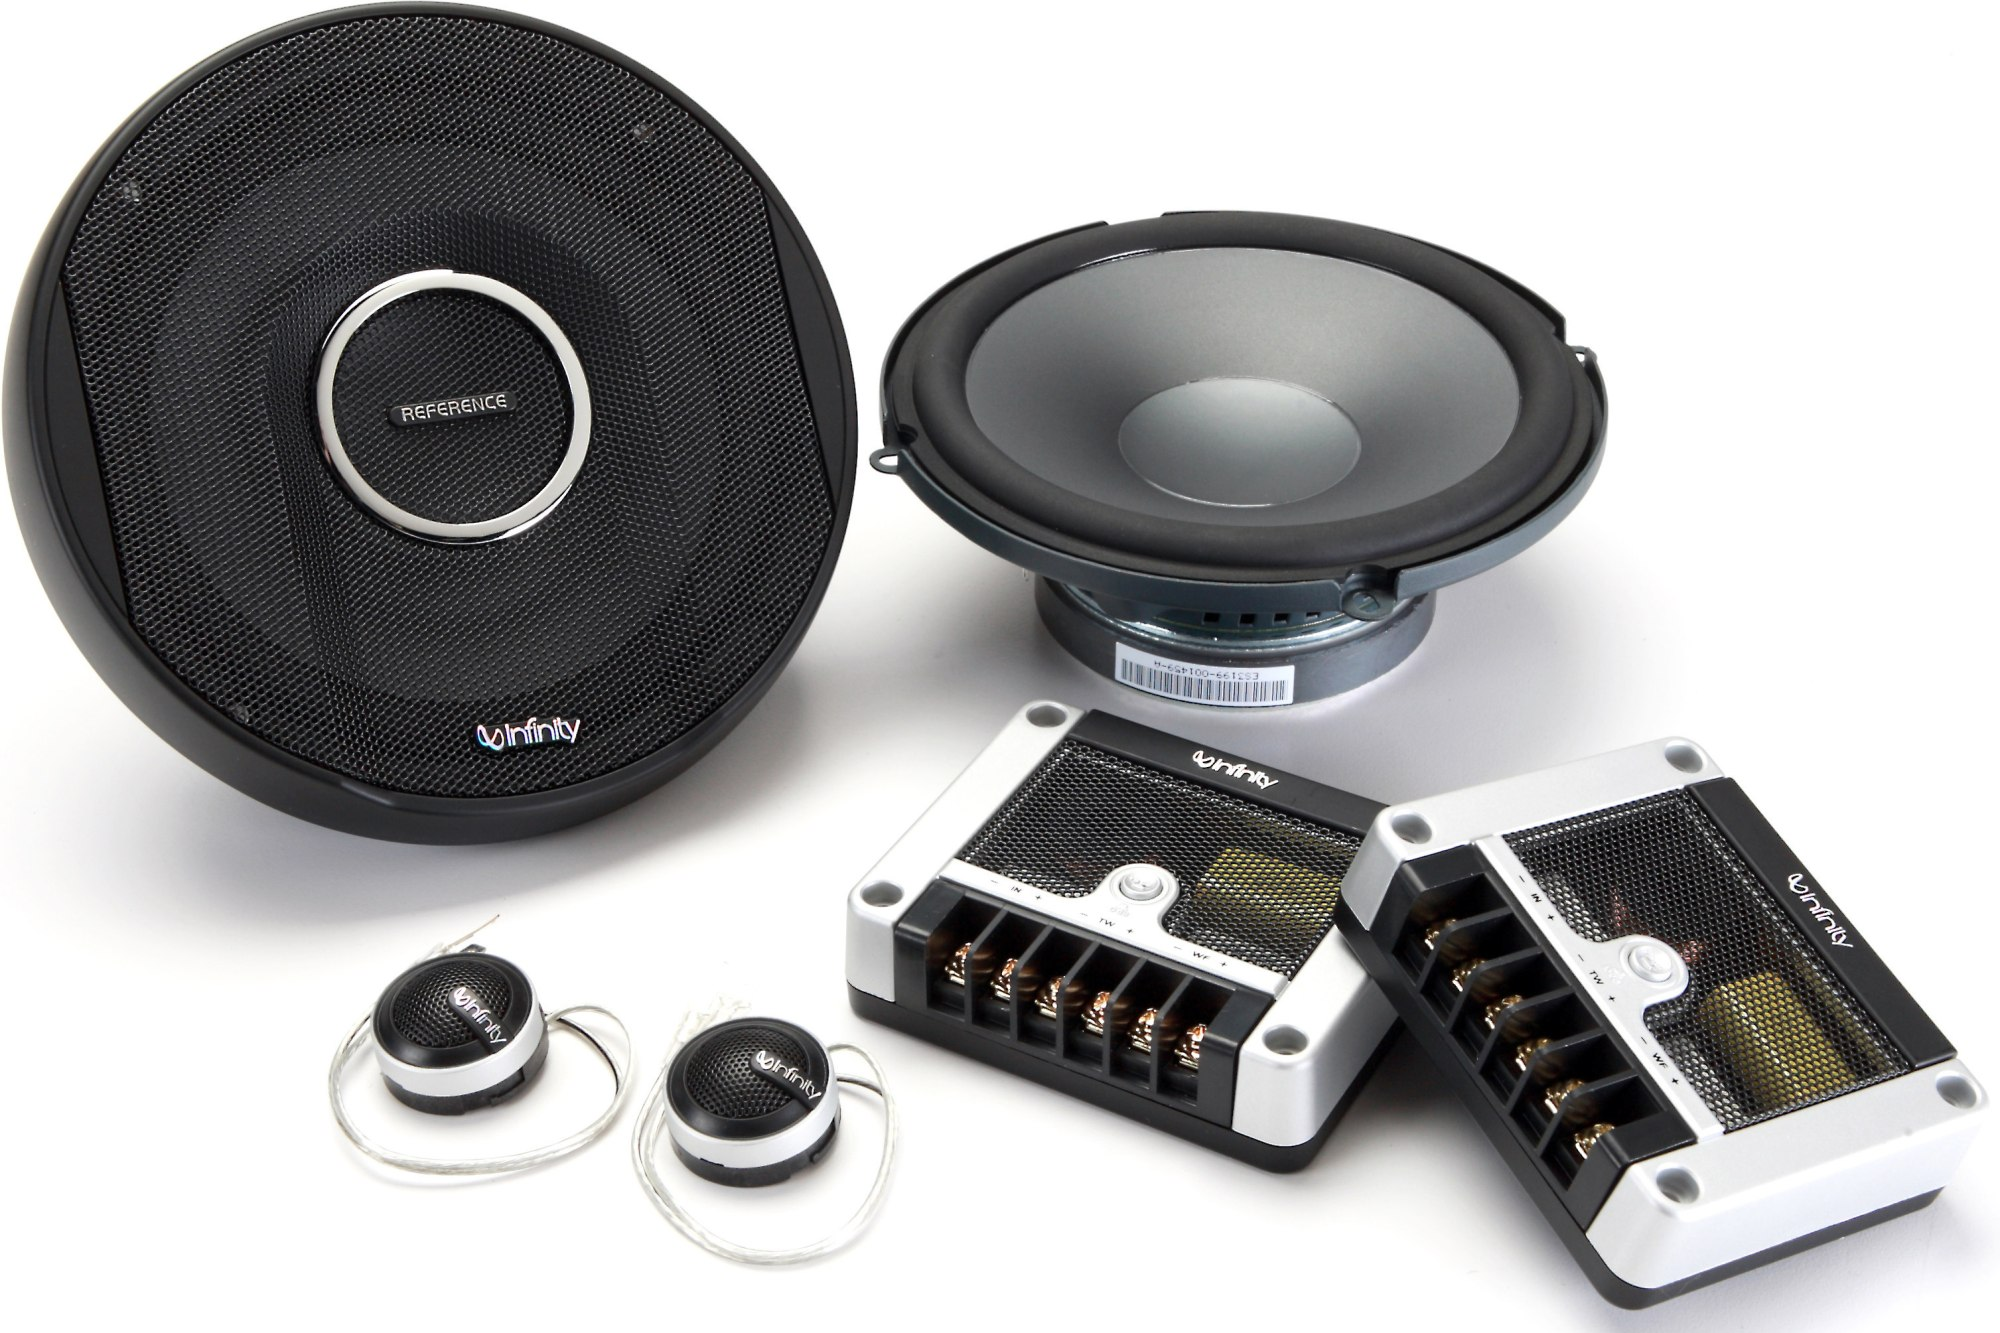 hight resolution of infinity reference x ref 6500cx 6 3 4 component speaker system also fit 6 1 2 openings at crutchfield com